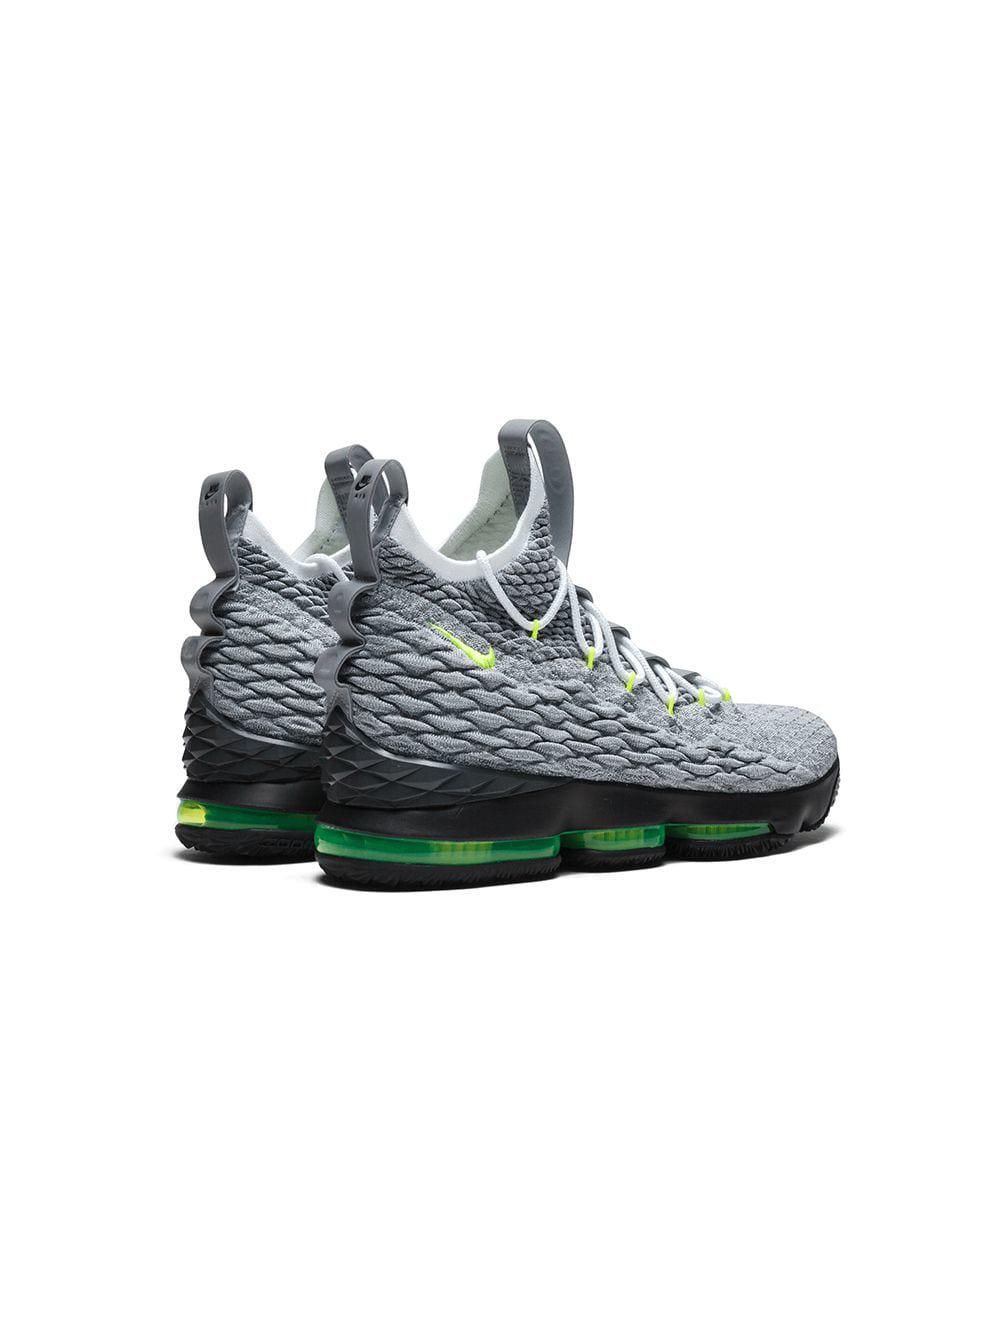 4db2528eae2fe Lyst - Nike Lebron 15 Ksa Sneakers in Gray for Men